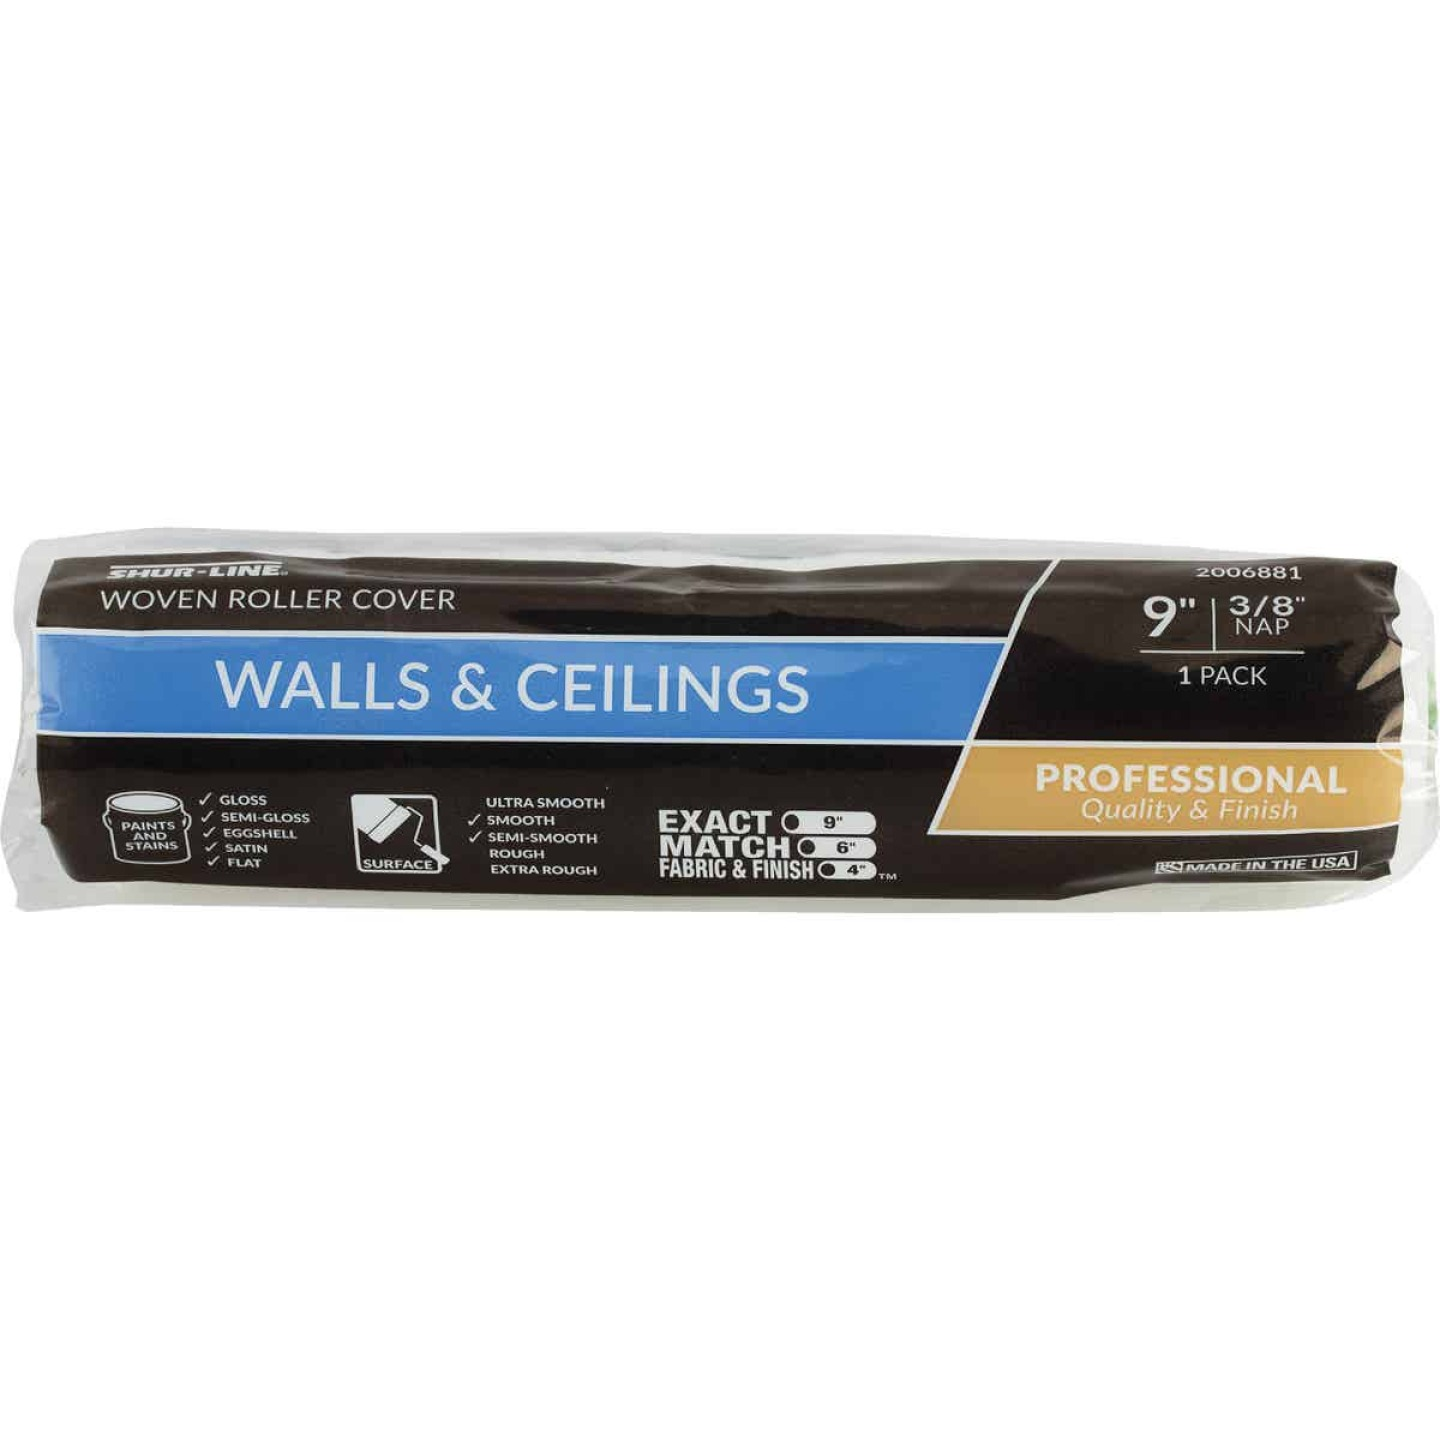 Shur-Line 9 In. x 3/8 In. Walls & Ceilings Woven Fabric Roller Cover Image 1